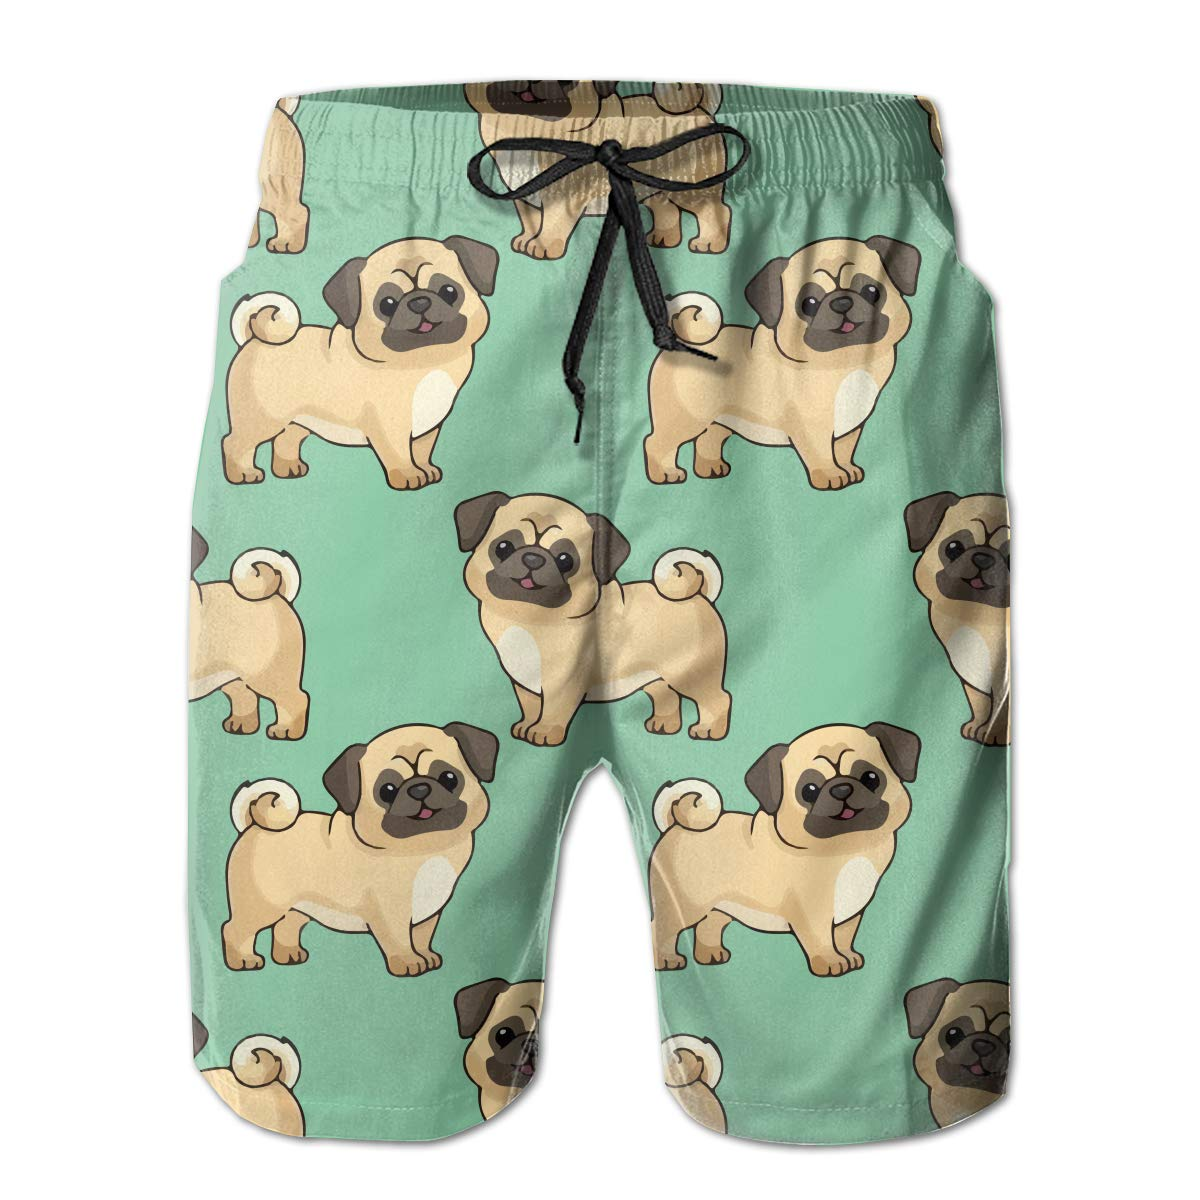 Pug presents for pug lovers dating